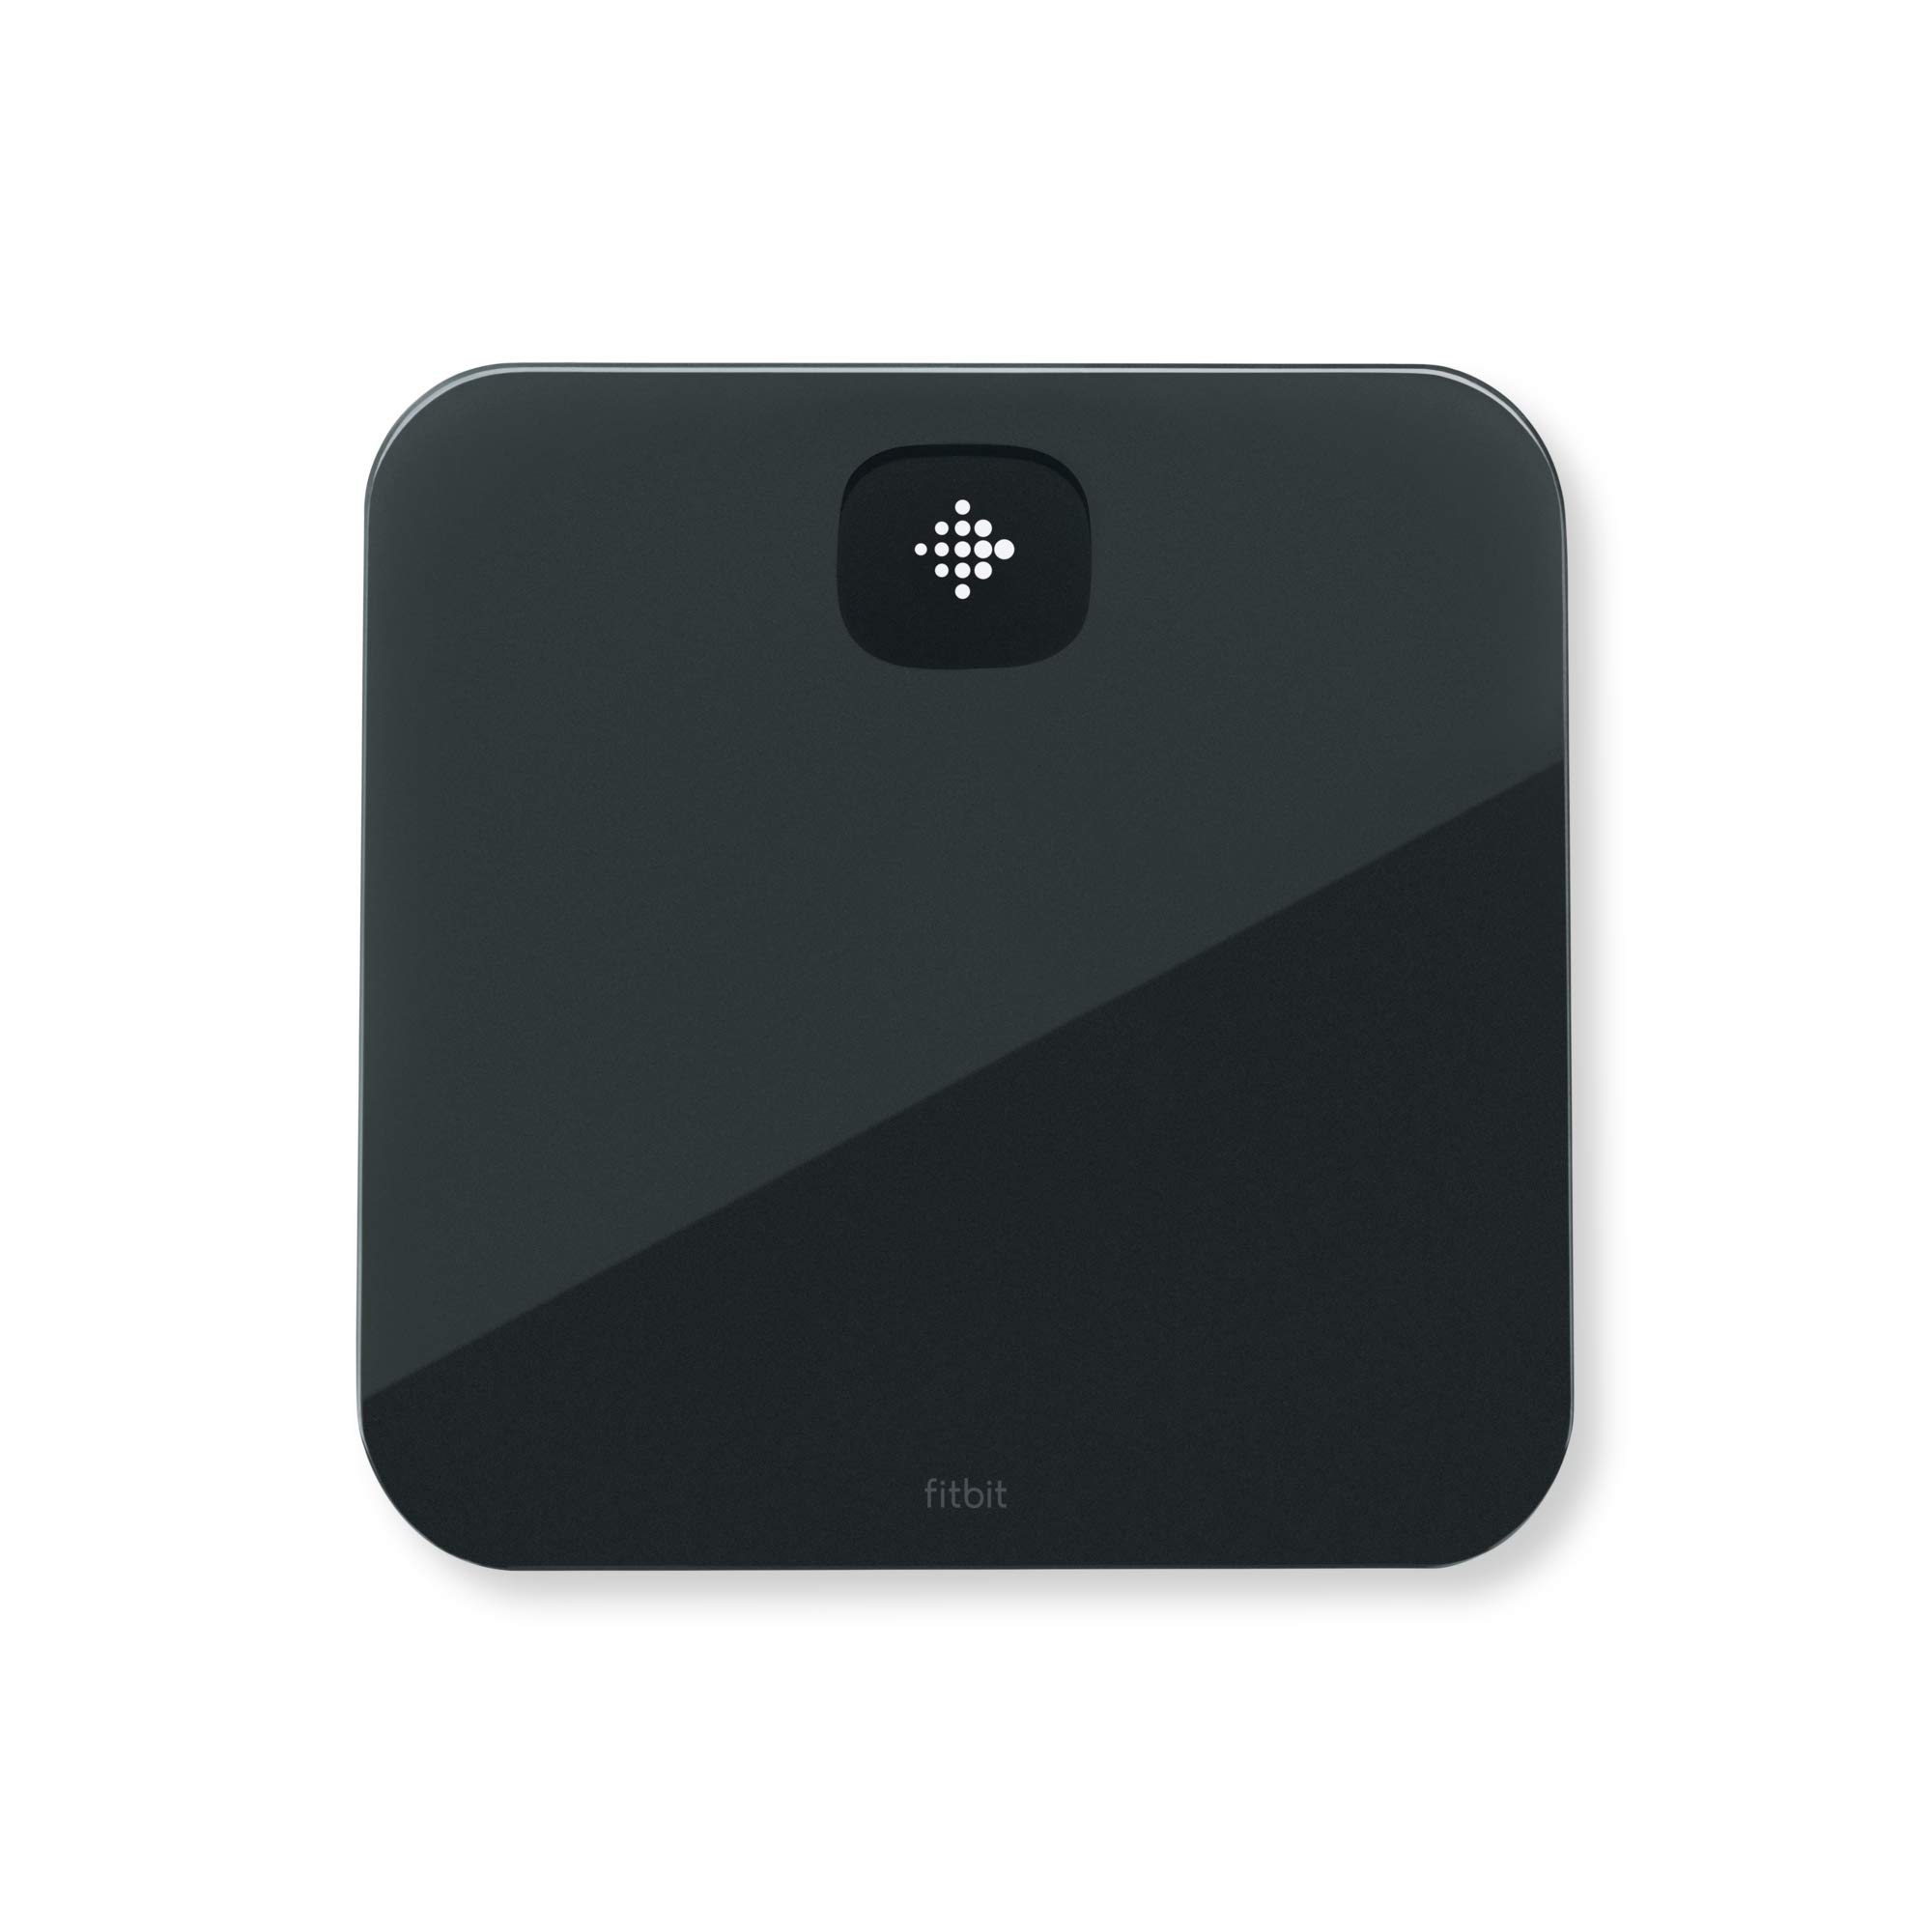 Fitbit Aria Air Bluetooth Digital Body Weight & Bmi Smart Scale, Black by Fitbit